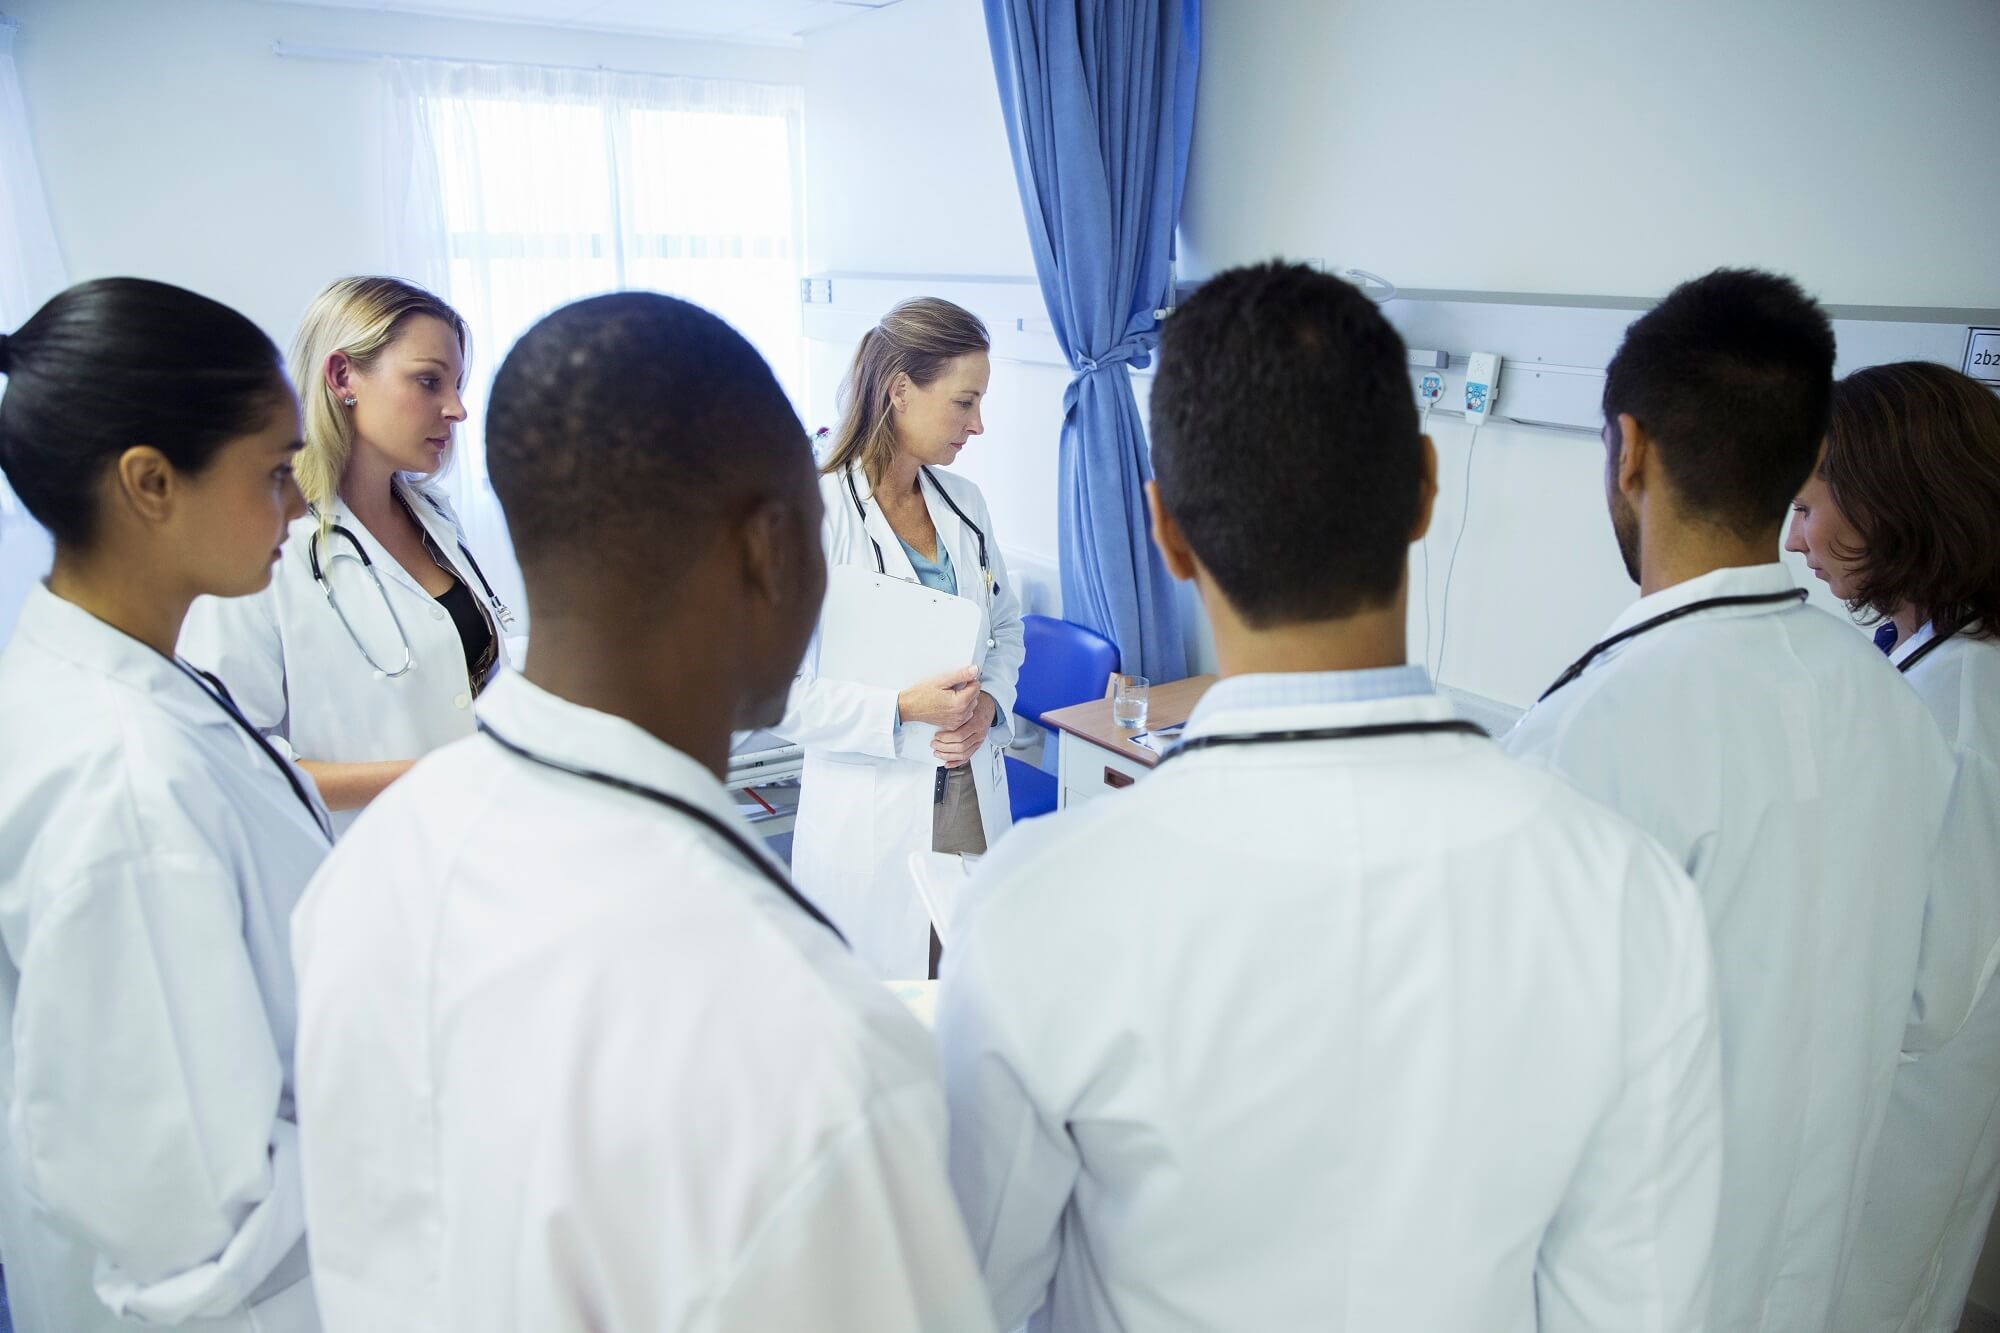 US Medical Schools Increase in Diversity After Implementation of Accreditation Standards